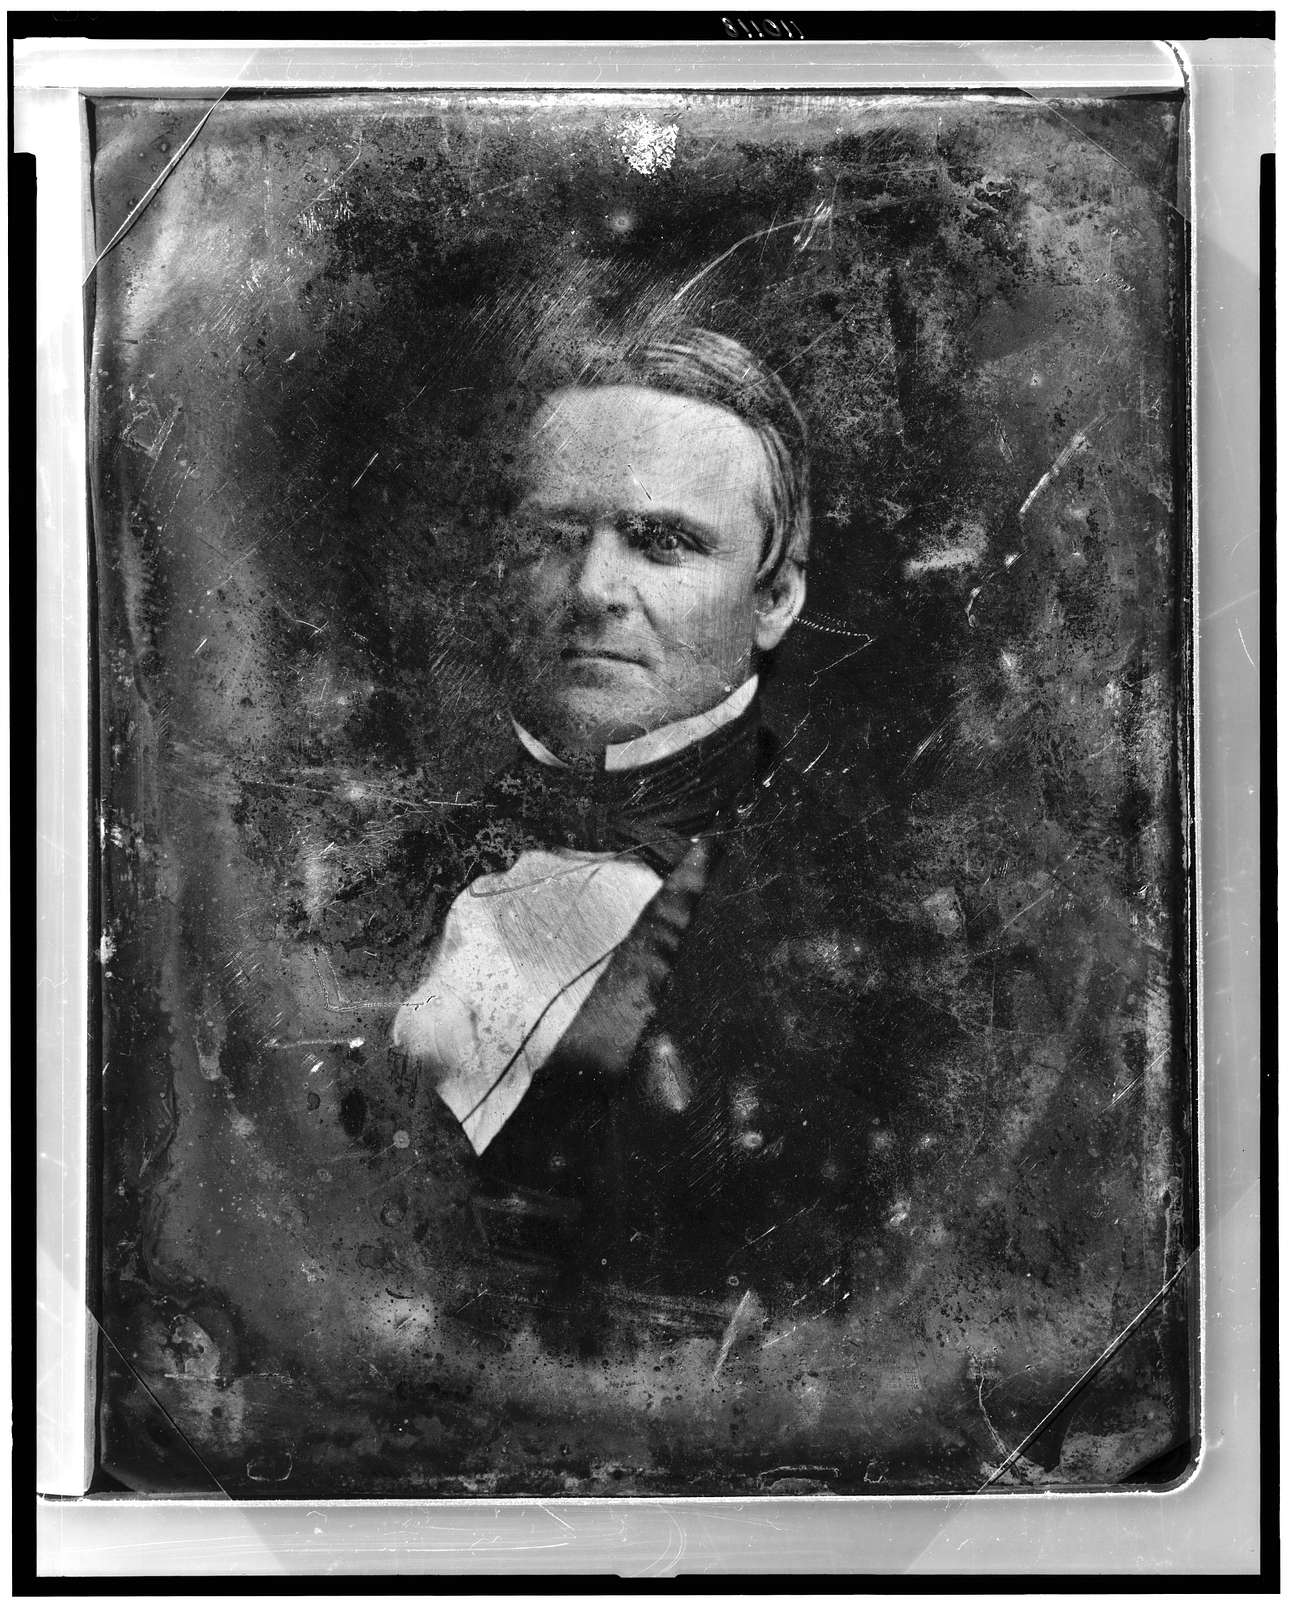 [Unidentified man, about 40 years of age, head-and-shoulders portrait, slightly to the left]